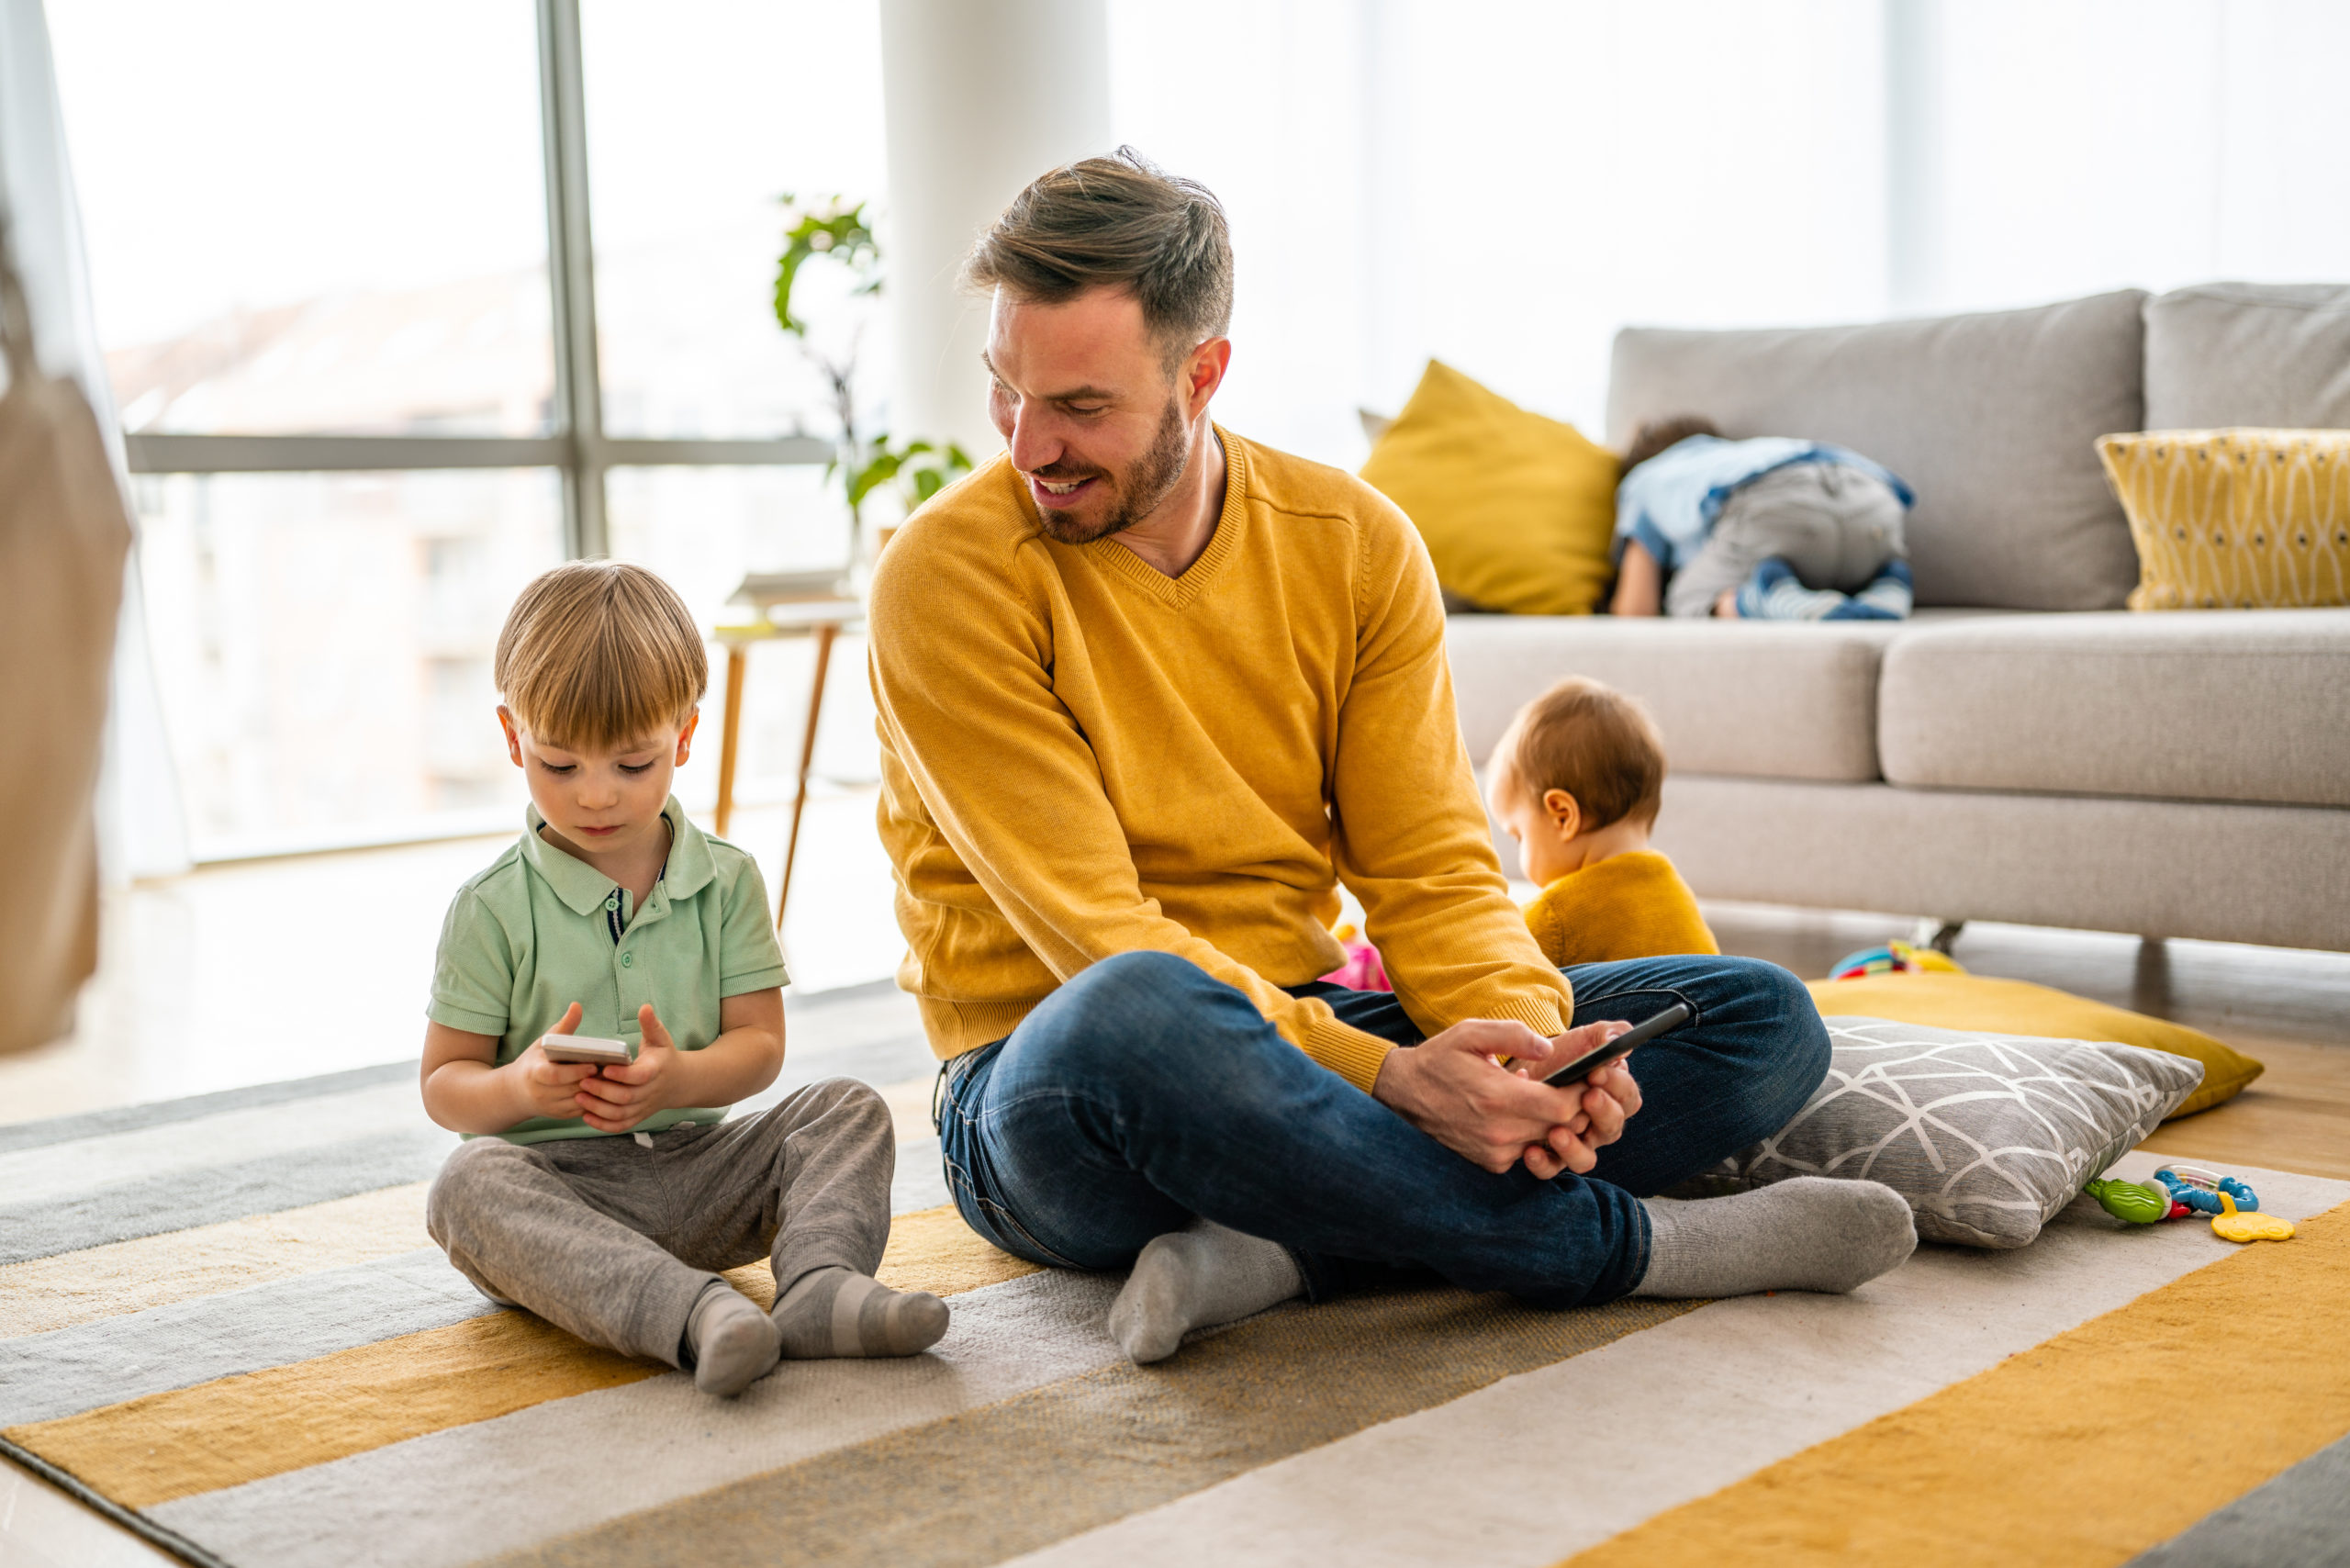 Schedule house cleaning services near me